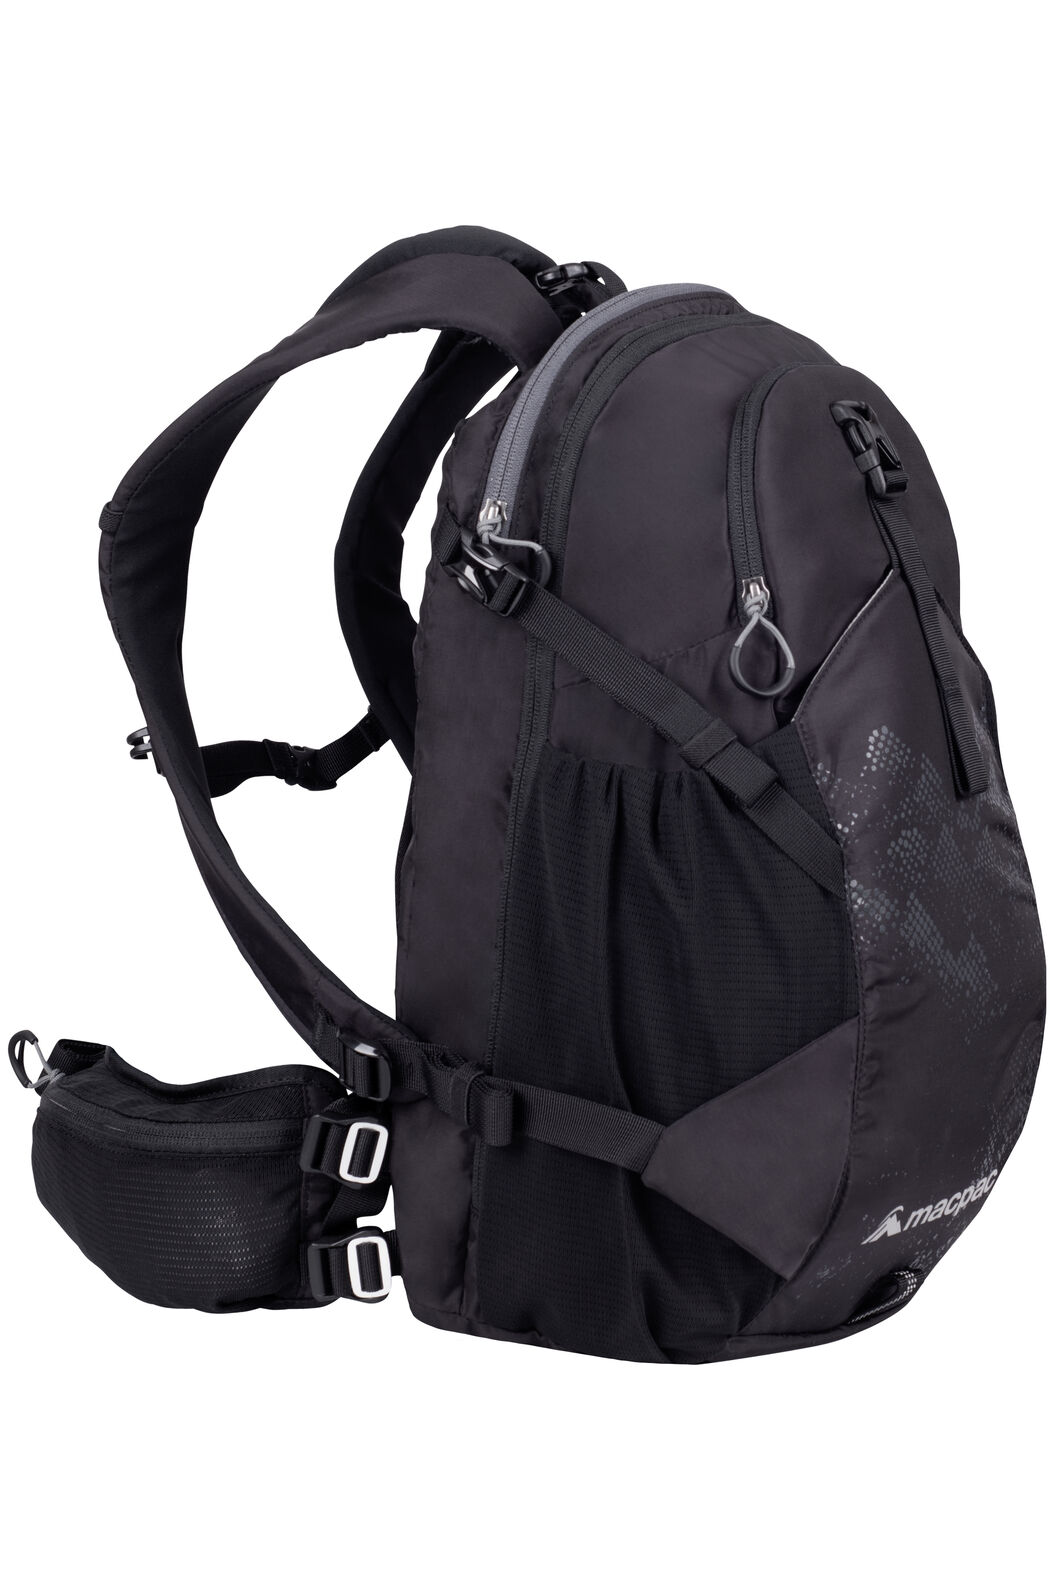 Macpac Mountain Bike 18L Pack, Black, hi-res